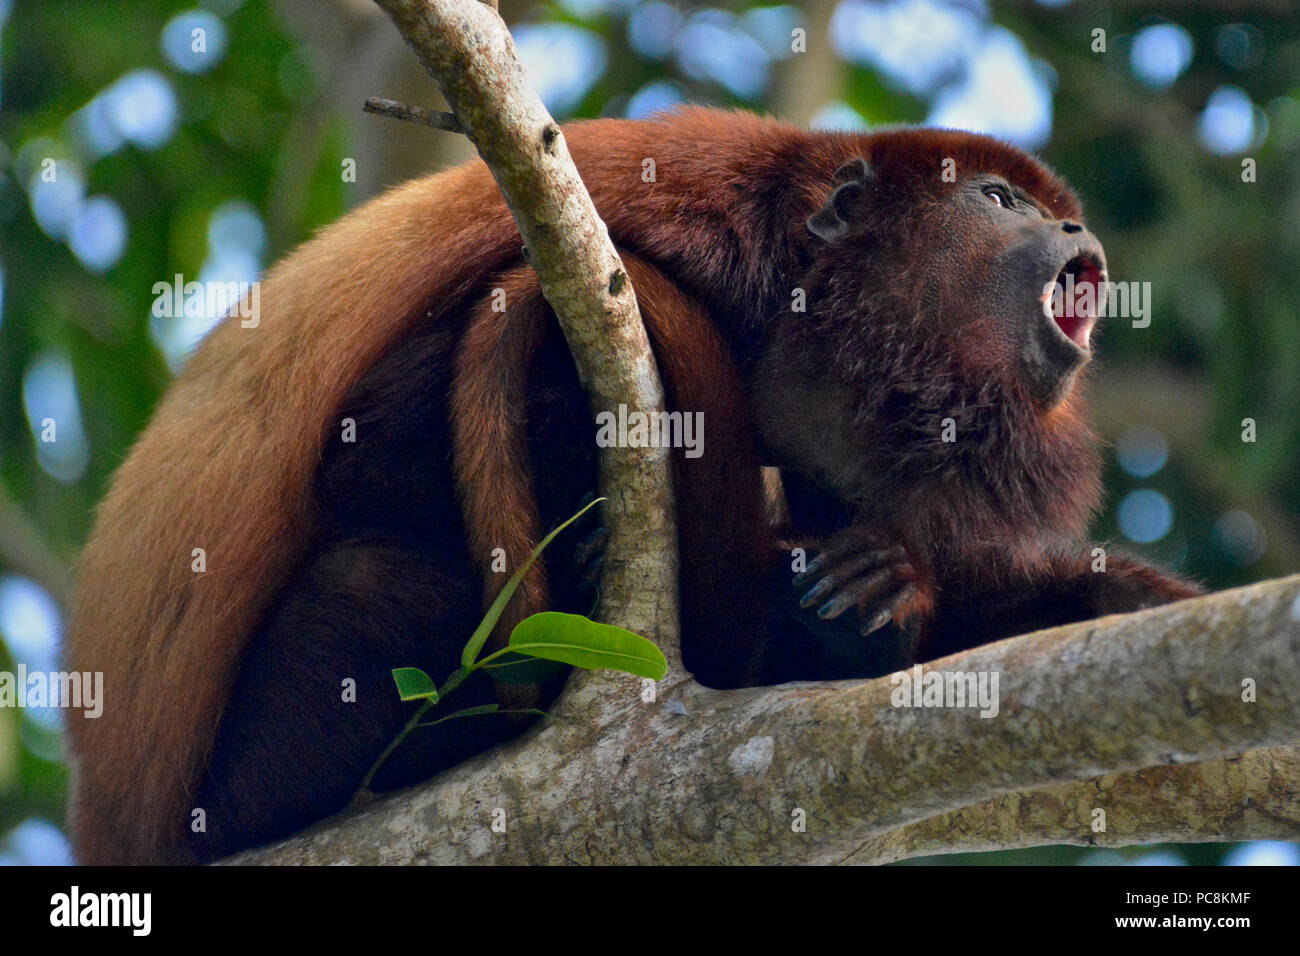 A Red Howler Monkey, Alouatta seniculus, howls on a branch. - Stock Image